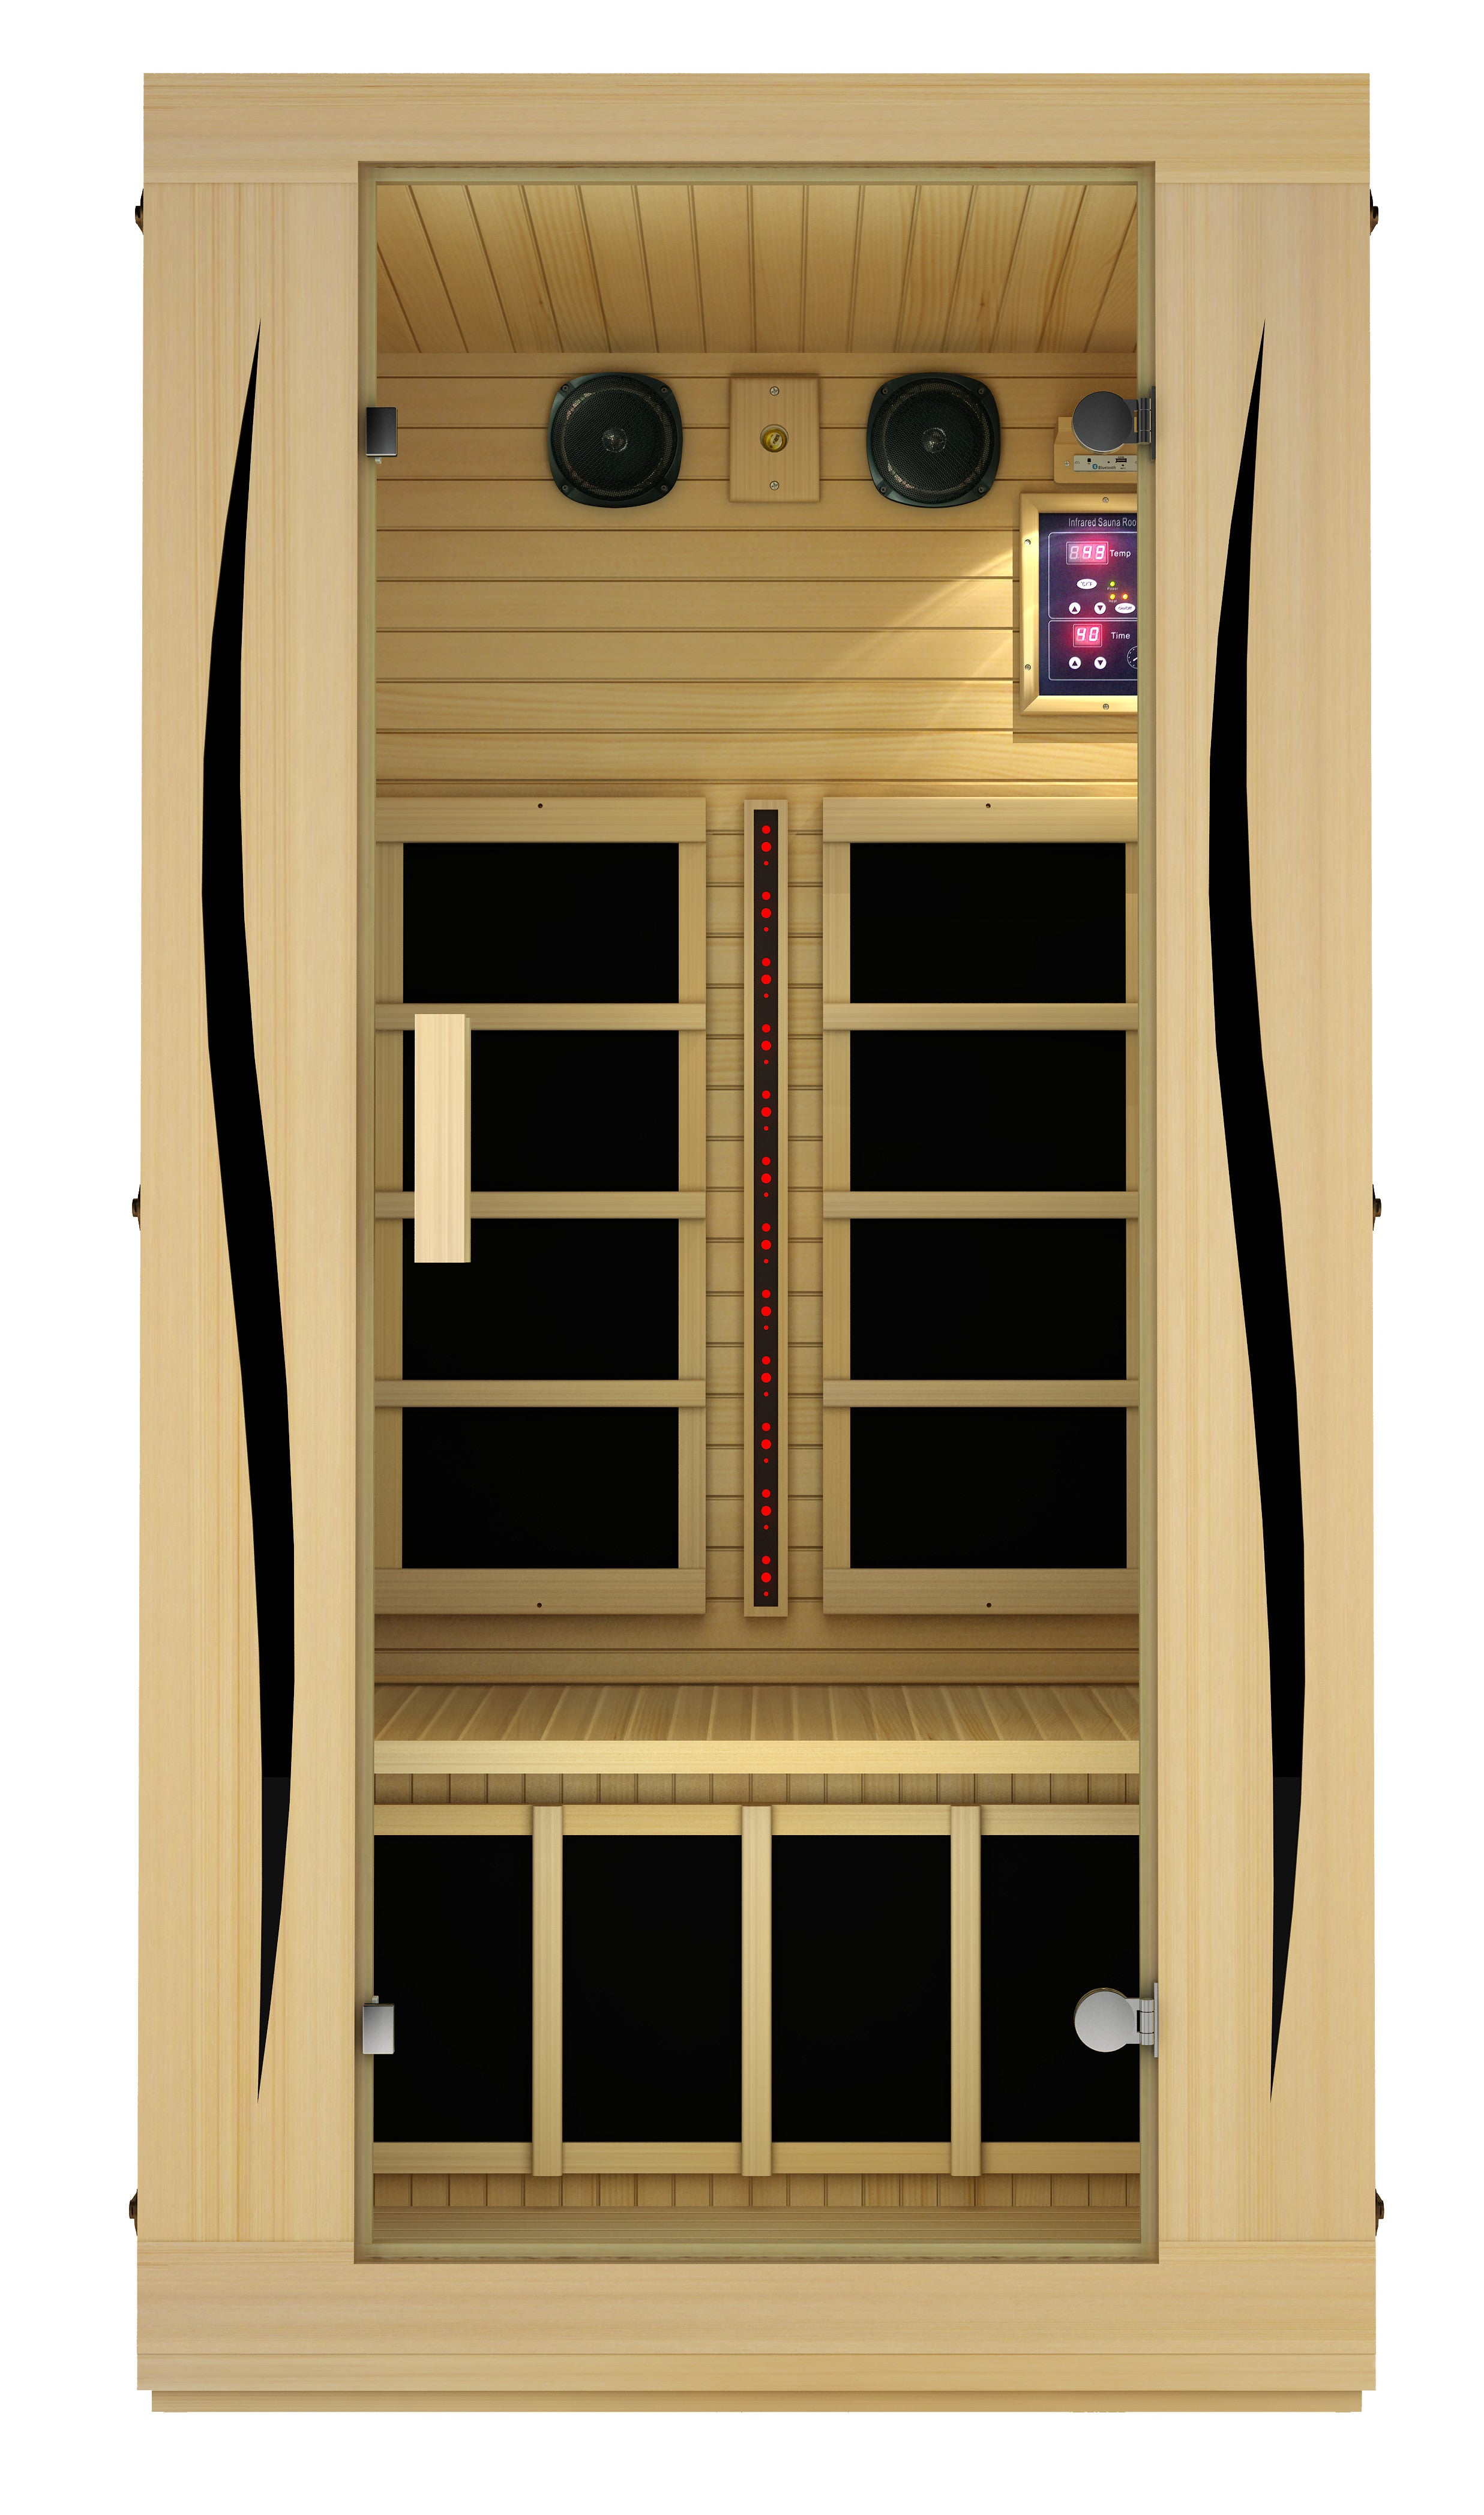 ProSeries 200 Full Spectrum Infrared Sauna